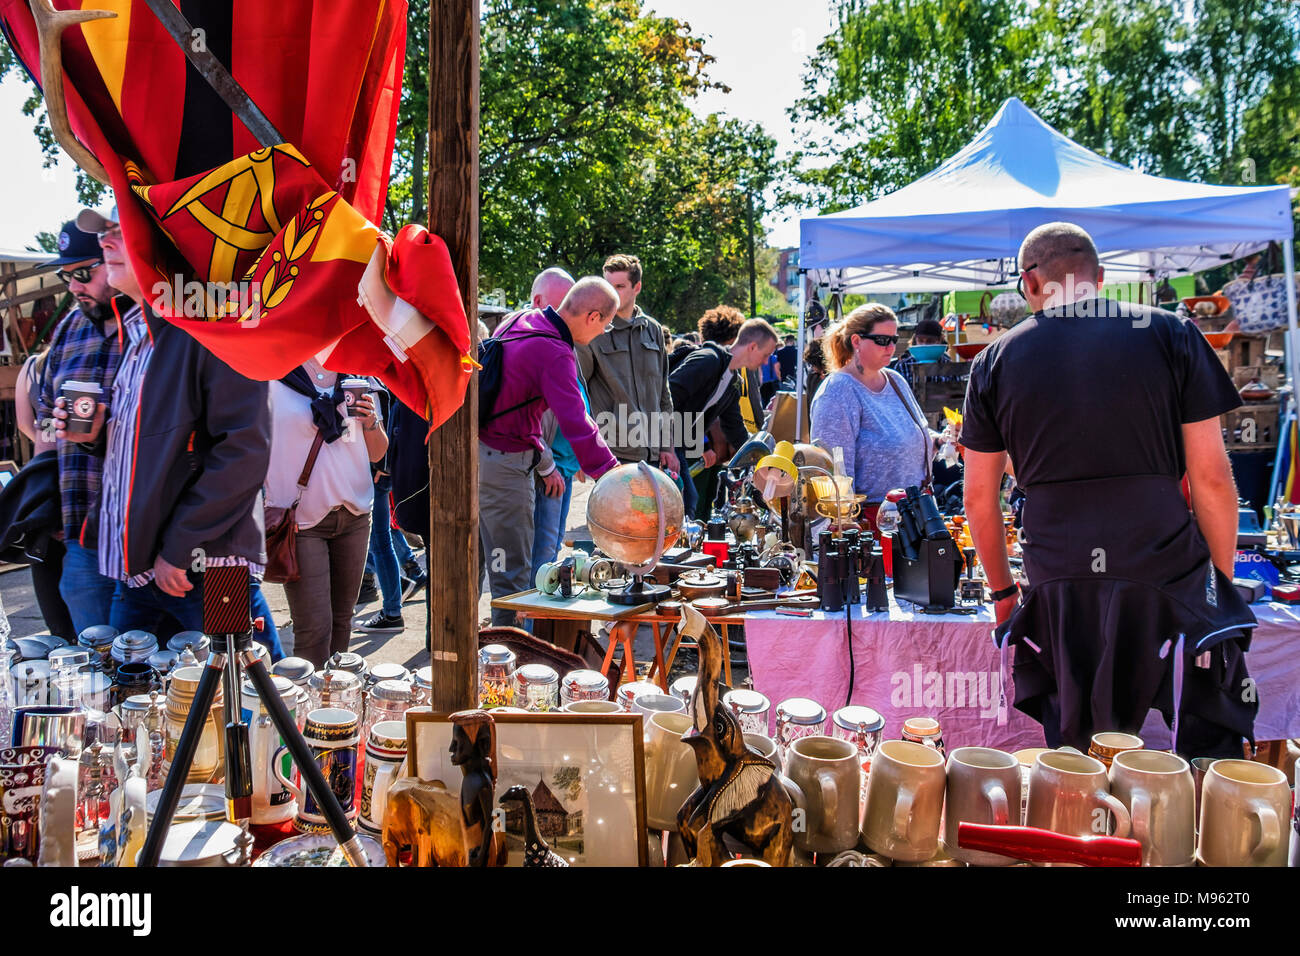 Berlin Mitte, Mauerpark Sunday market.People visit stalls selling collectibles,bric-a-brac,second hand goods,vintage items - Stock Image